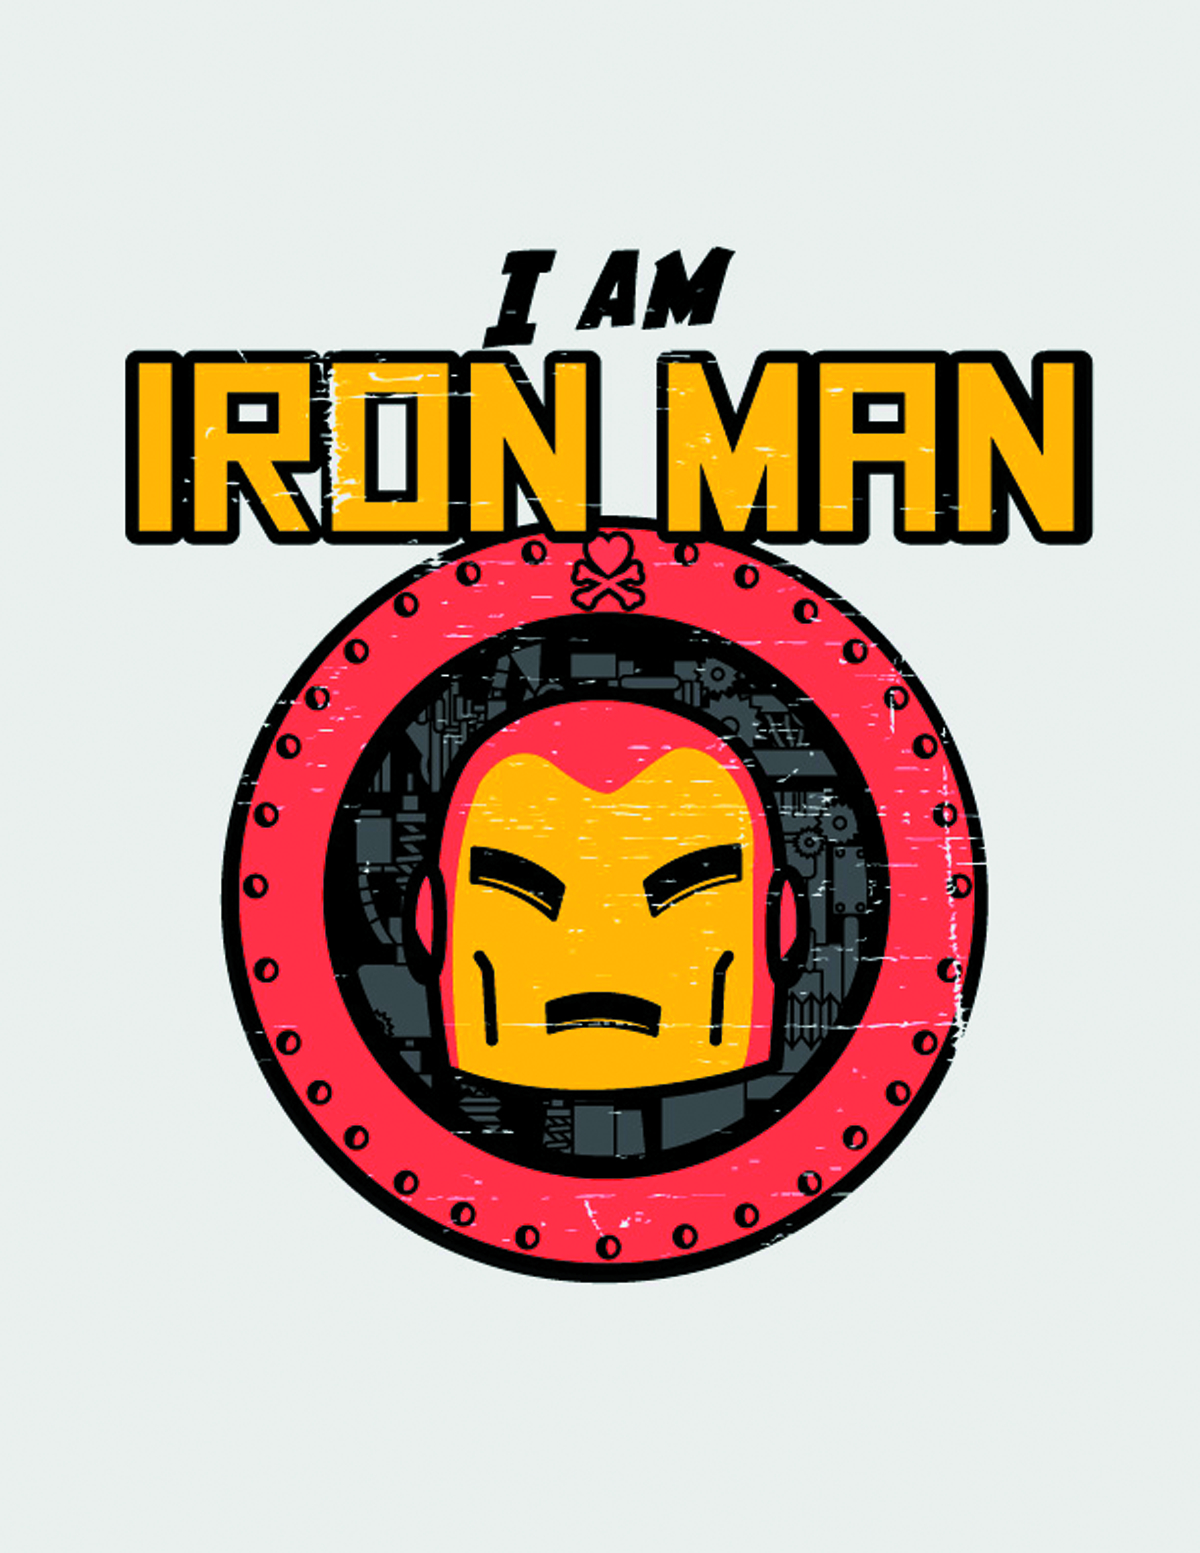 AUG121753 - MARVEL X TOKIDOKI IM IRON MAN T/S MED - Previews